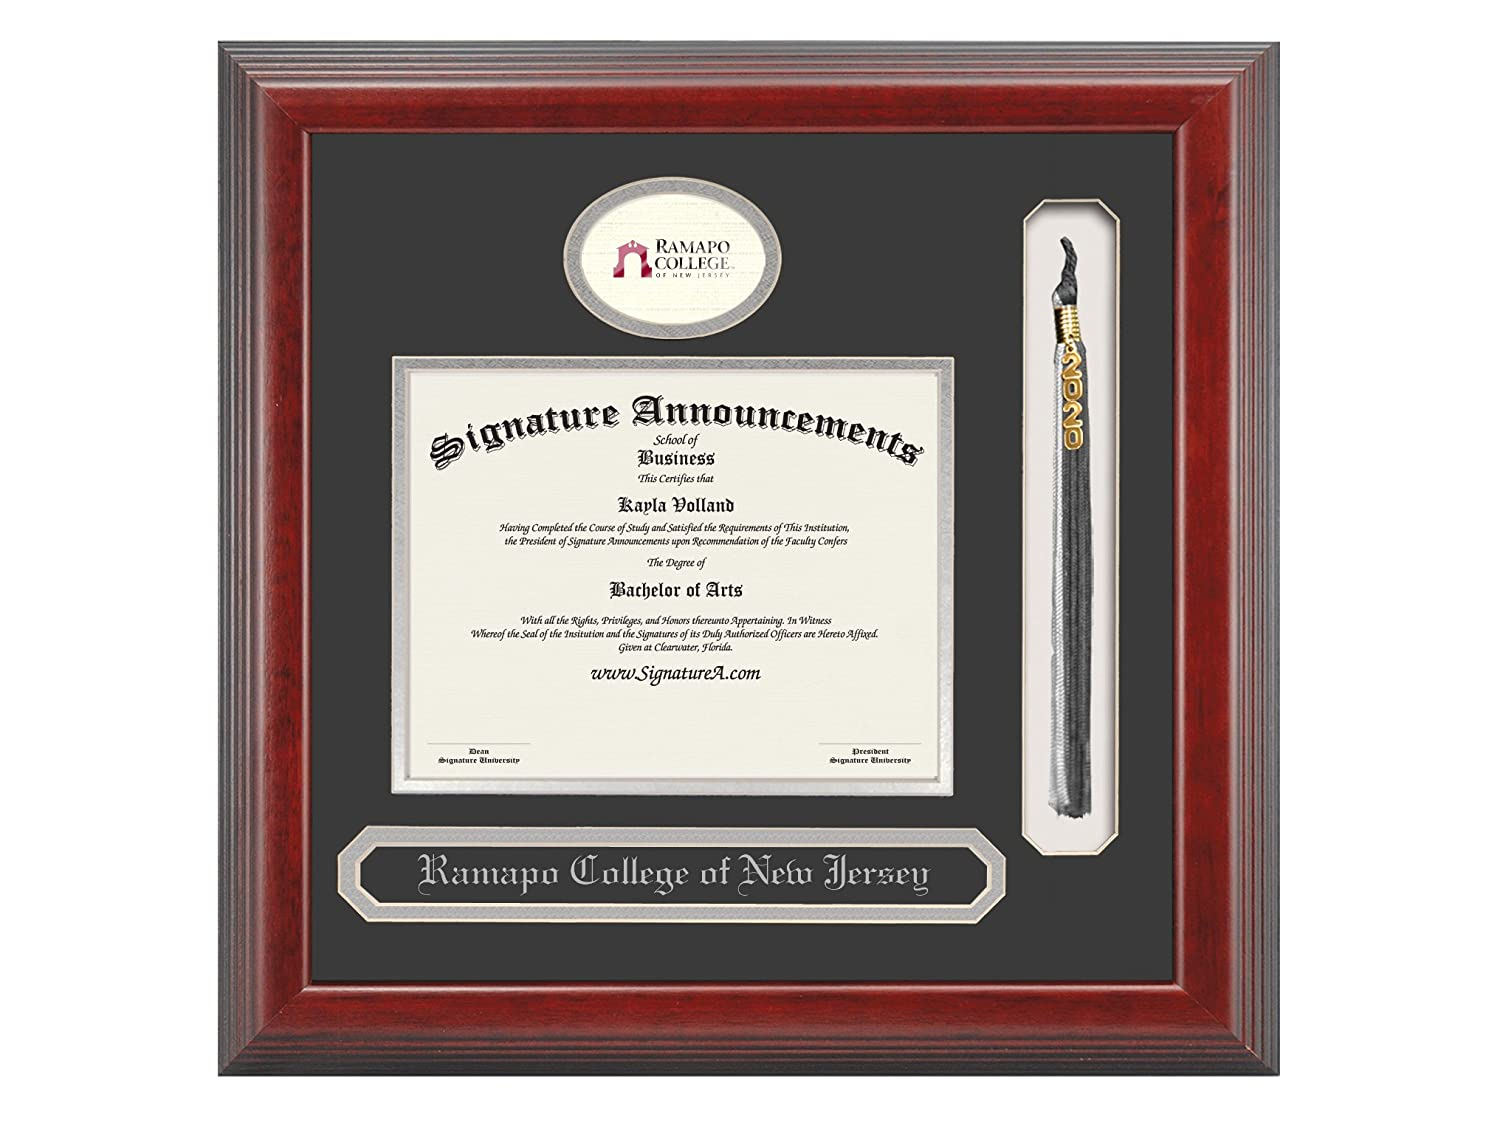 Sculpted Foil Seal Name /& Tassel Graduation Diploma Frame 16 x 16 Cherry Signature Announcements Ramapo-College-of-New-Jersey Undergraduate